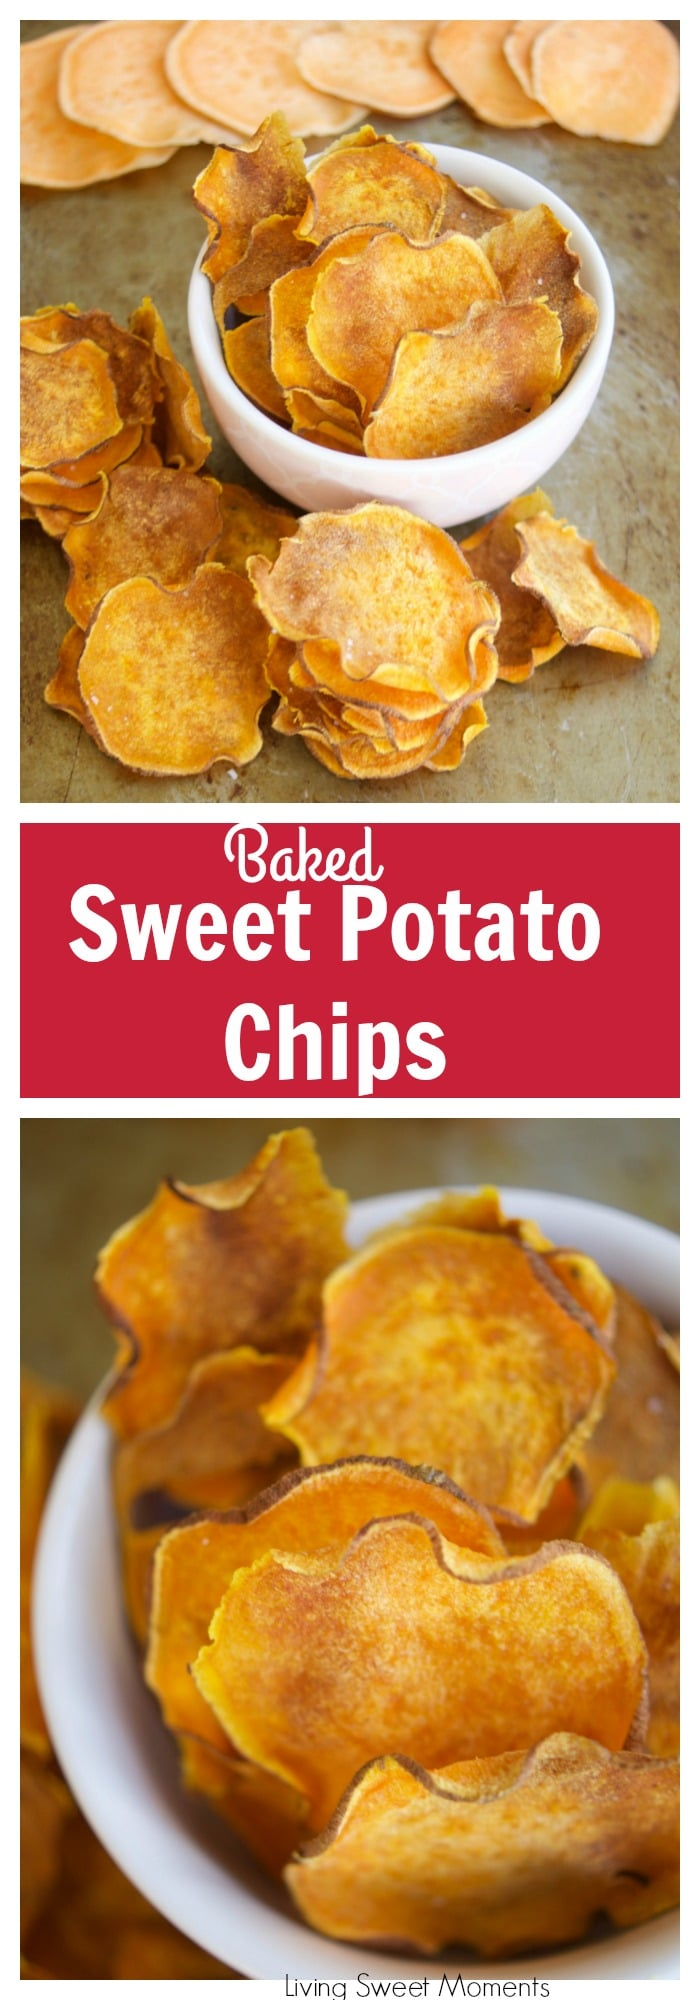 Crunchy Baked Sweet Potato Chips - Living Sweet Moments